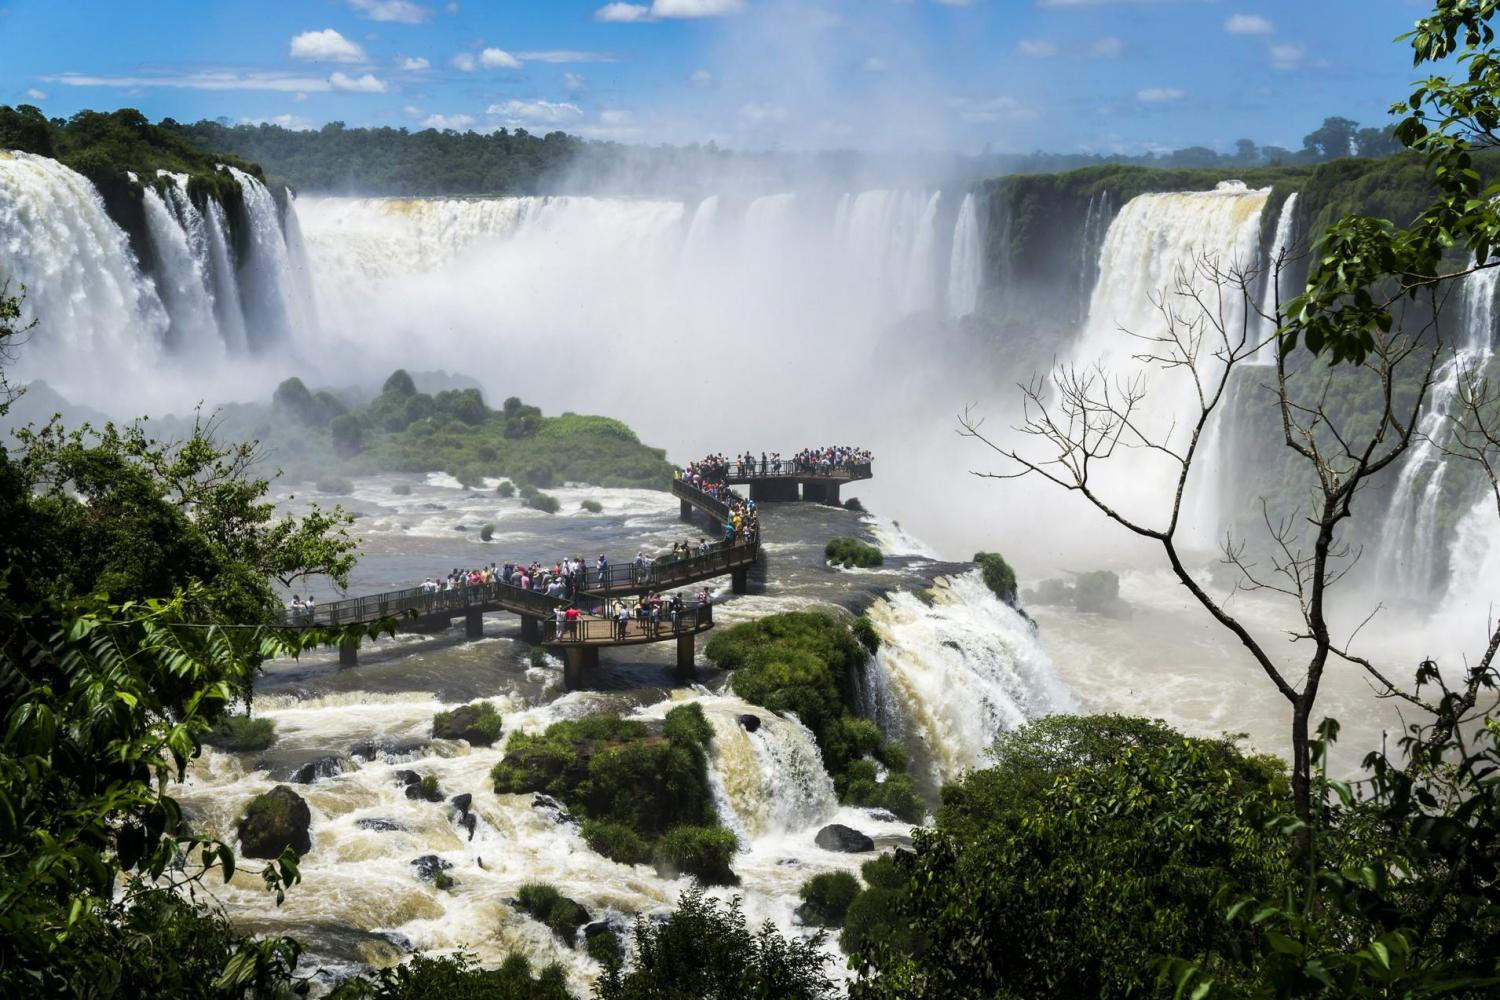 Iguazu Falls - Brazil side with Macuco, Helicopter Flight and Bird Park